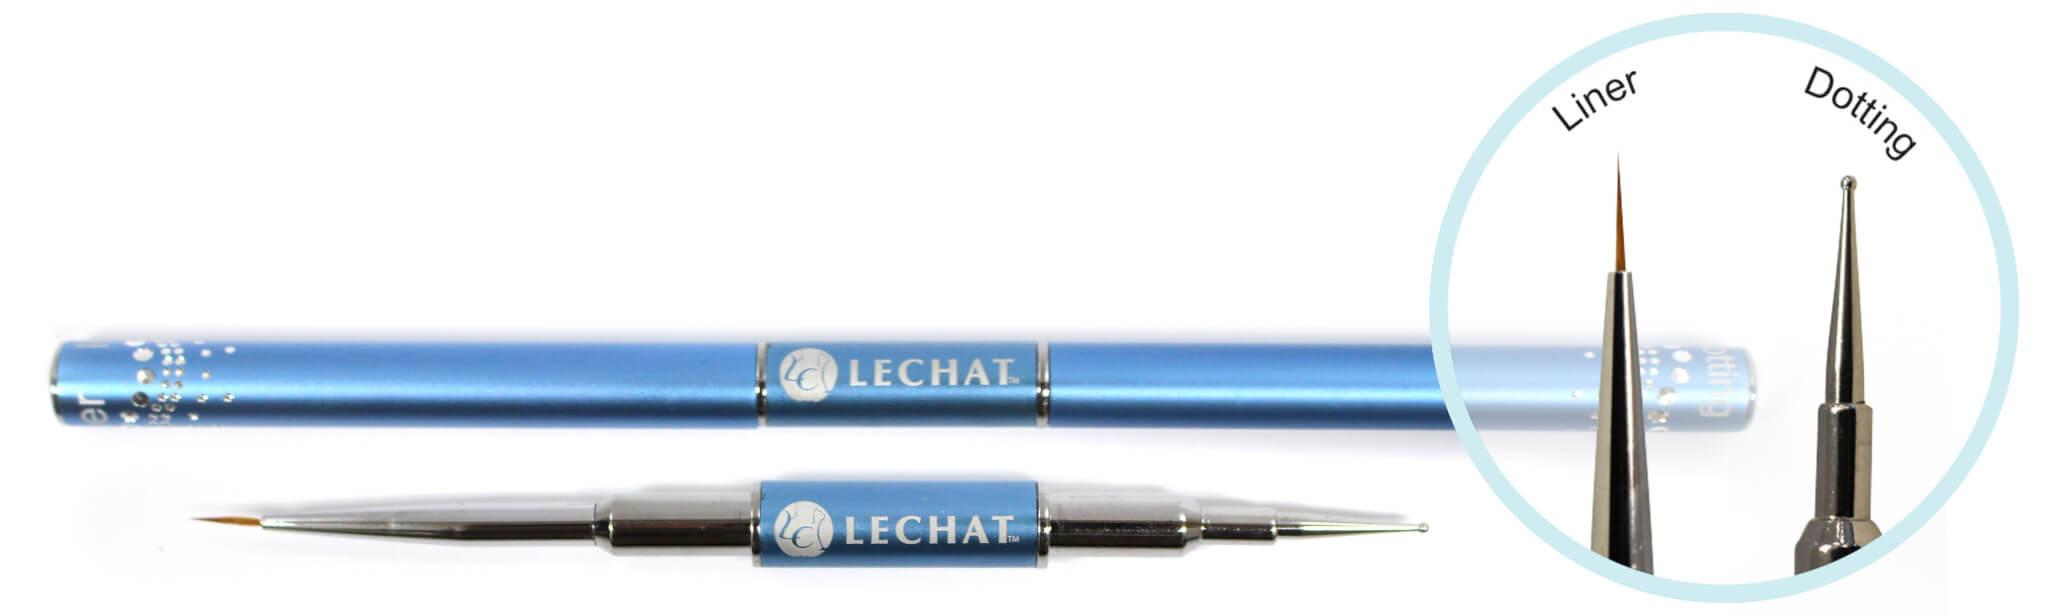 Dual Sided Tool Liner Dotting Lechat Nails